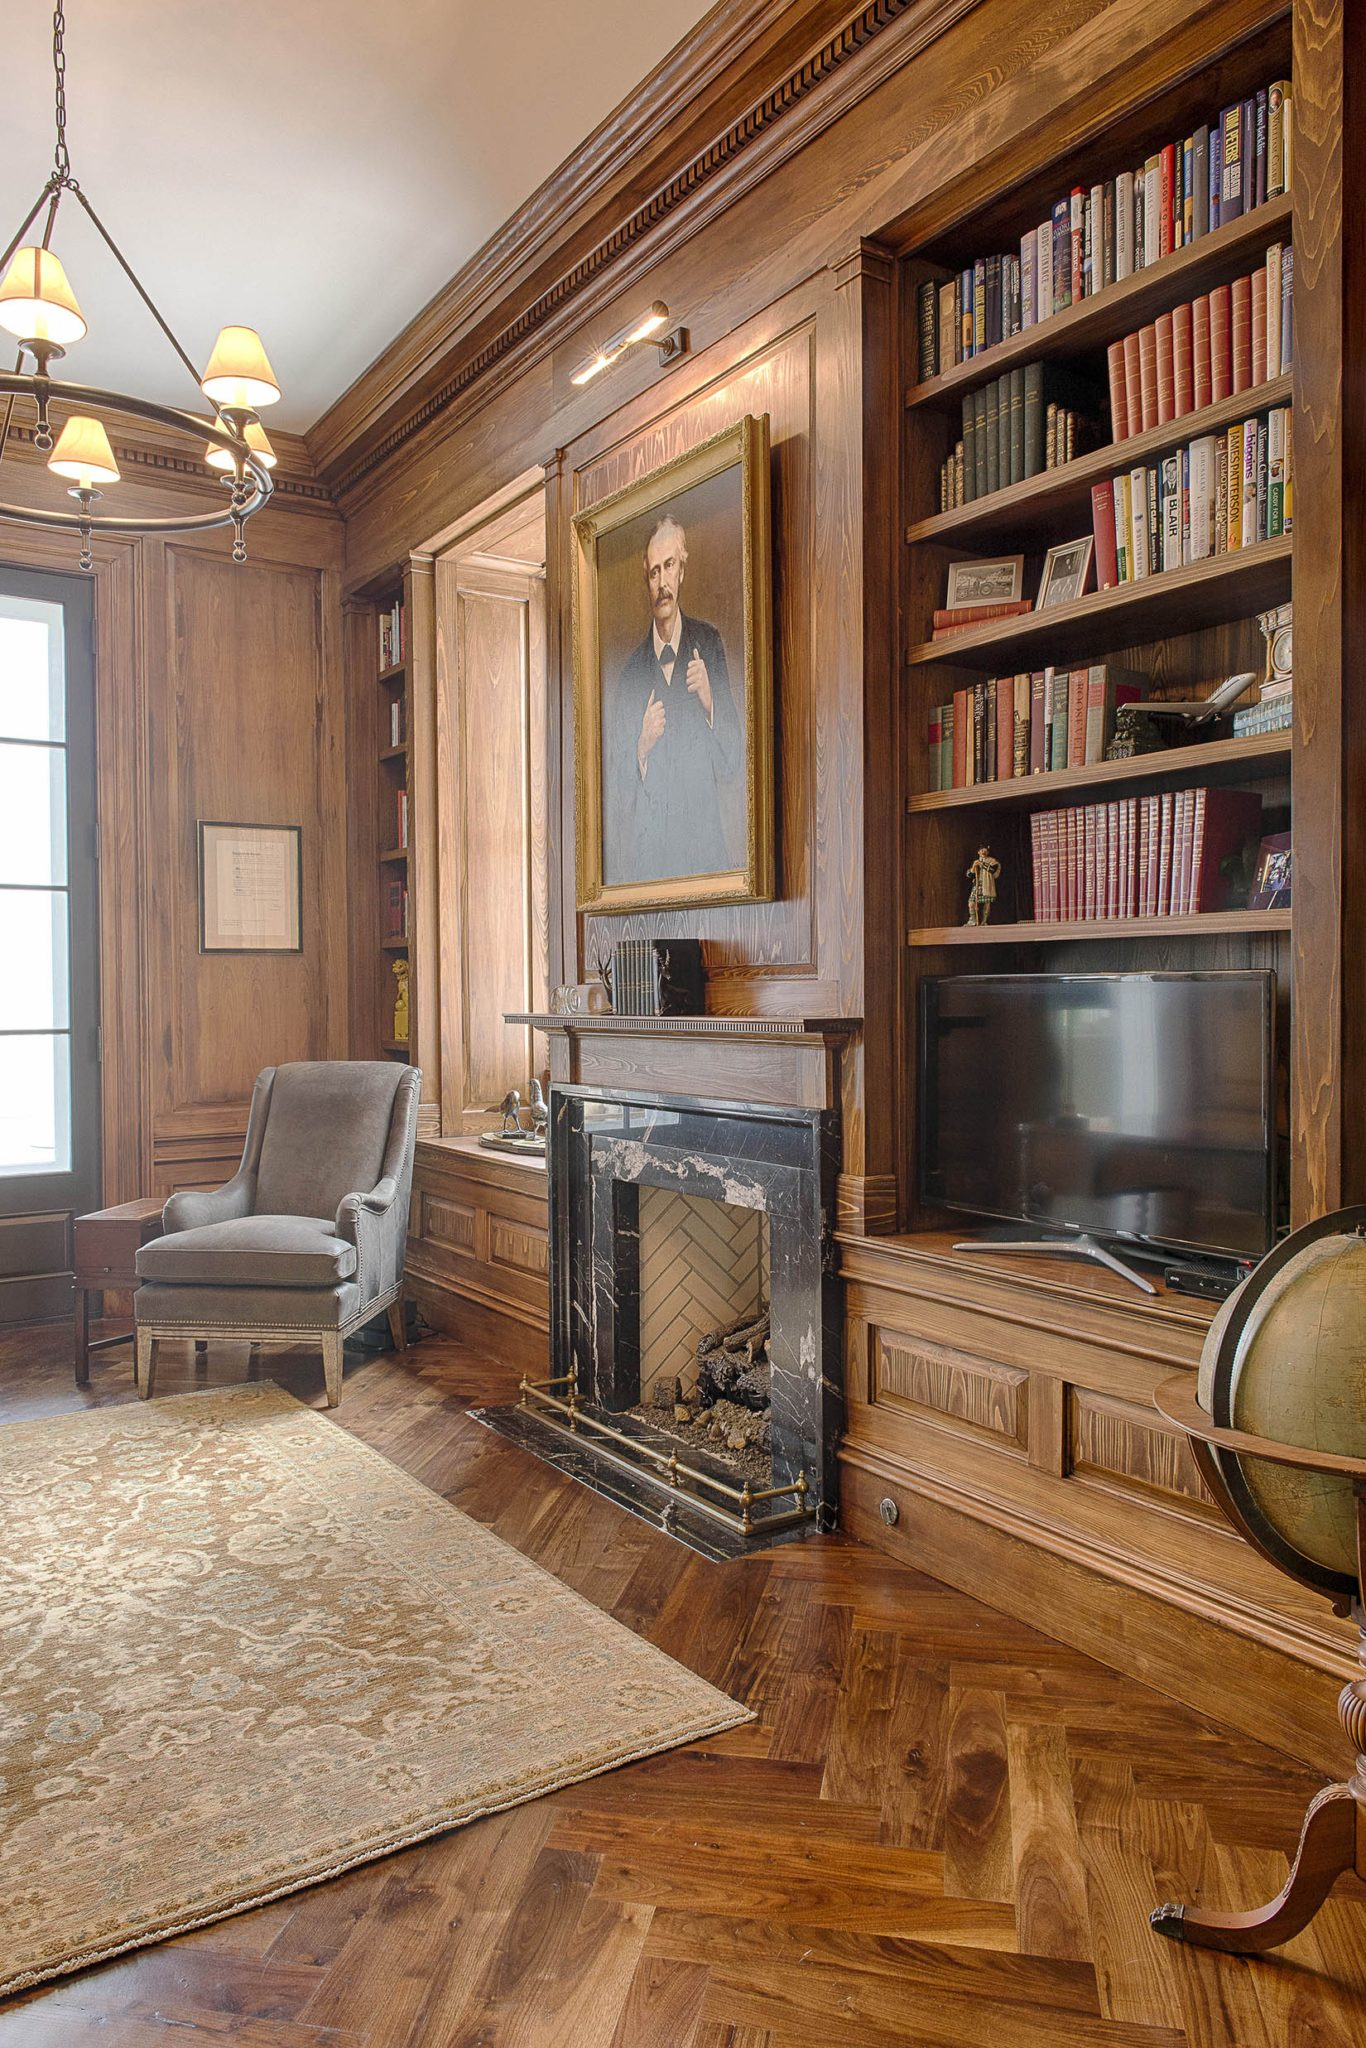 GENTLEMAN'S STUDY | Whitemarsh Island, Georgia by Historical Concepts